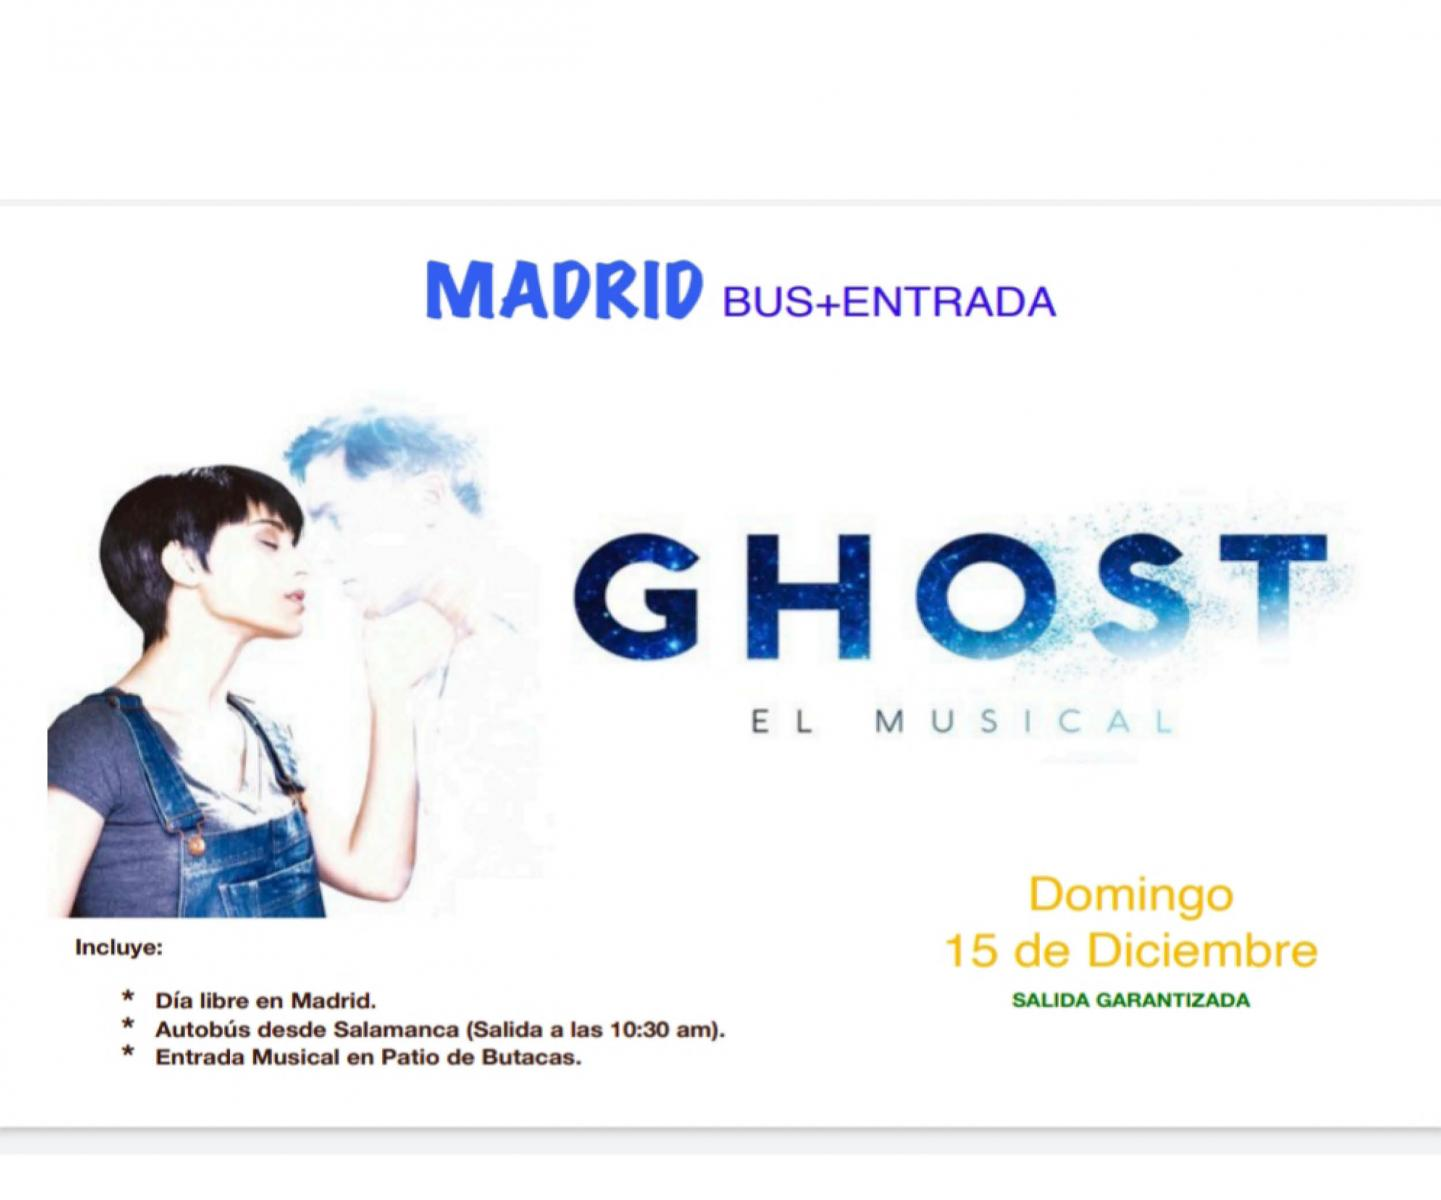 GHOST EL MUSICAL#DOMINGO 15 DICIEMBRE#TEATRO EDP GRAN VIA (MADRID)